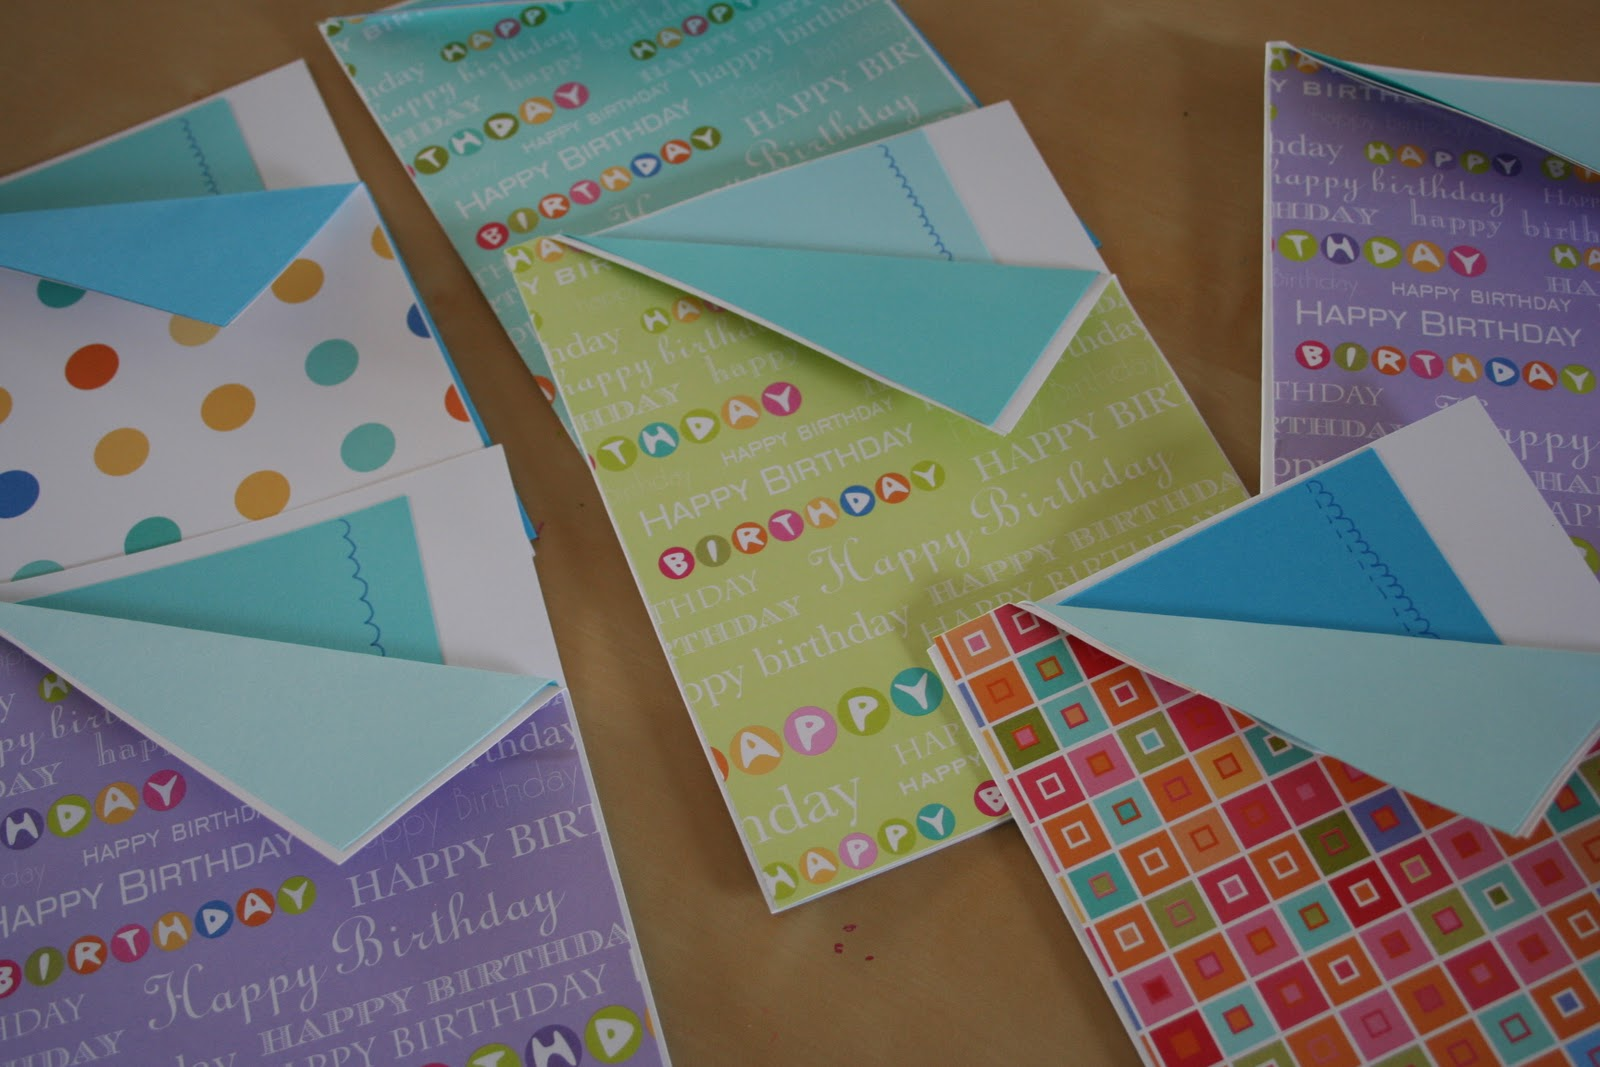 March arts and crafts - We Set The Mood With These Cute Little Invitations